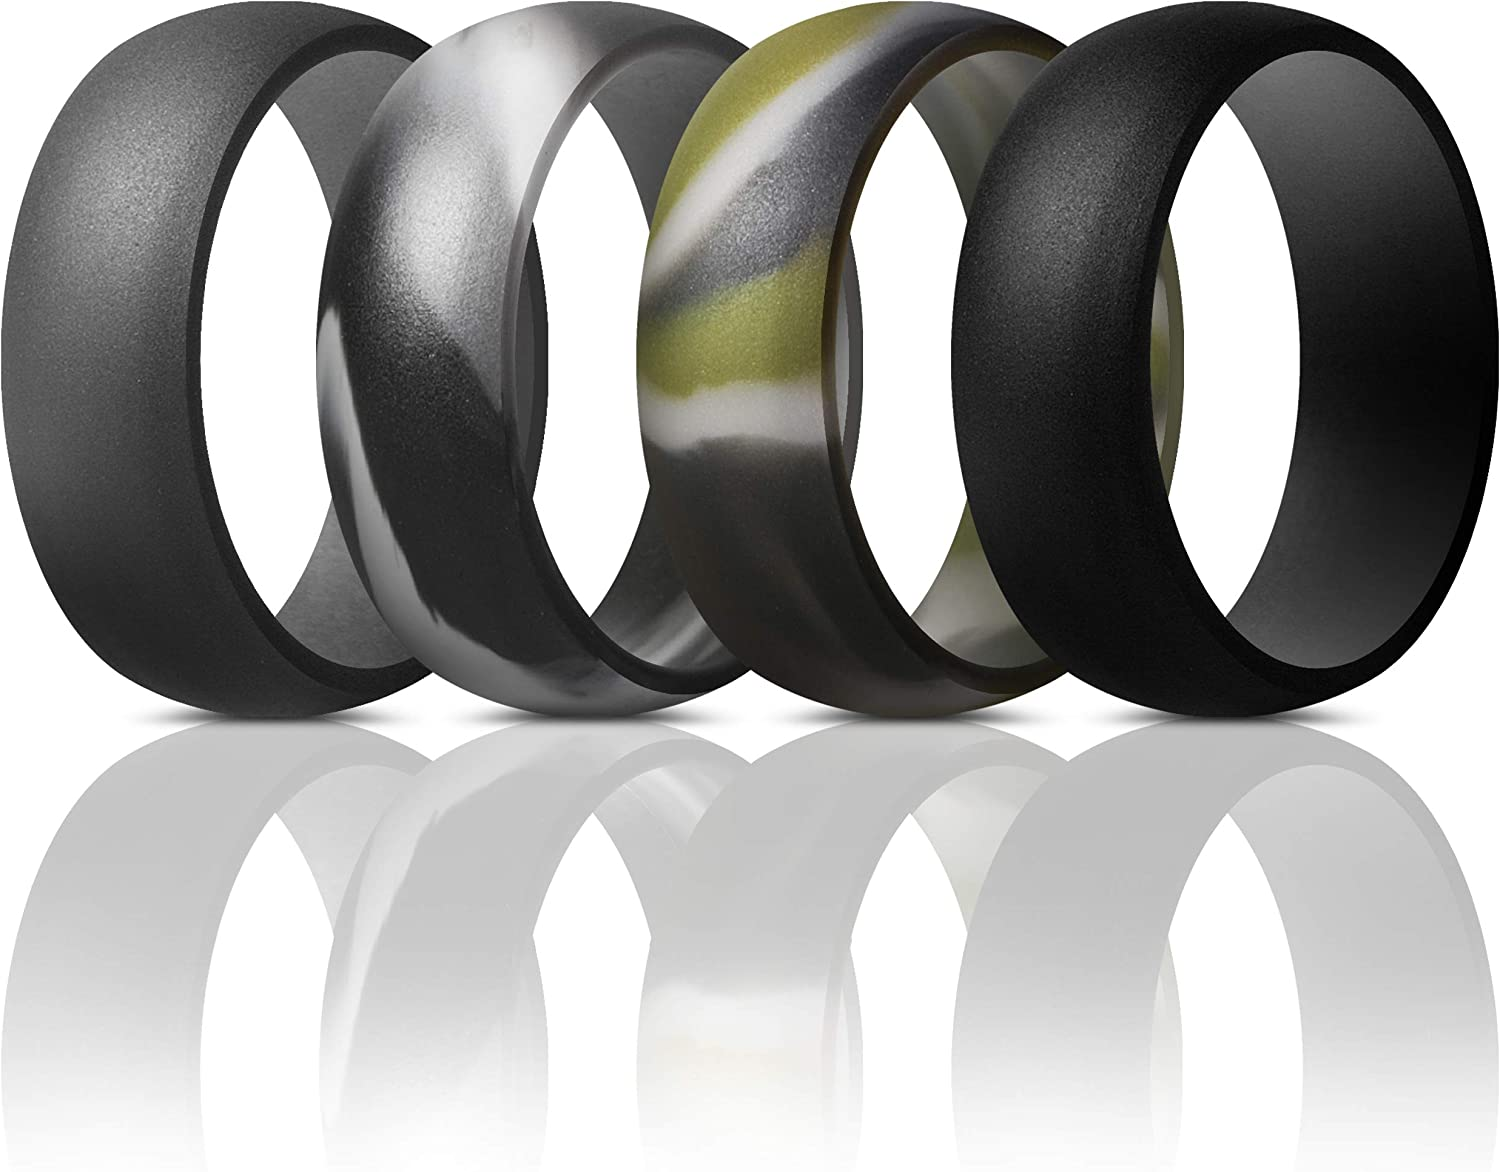 7 Rings // 4 Rings // 1 Ring ThunderFit Mens Silicone Rings Wedding Bands 8.7 mm Wide Classic /& Striped Style 2.5mm Thick